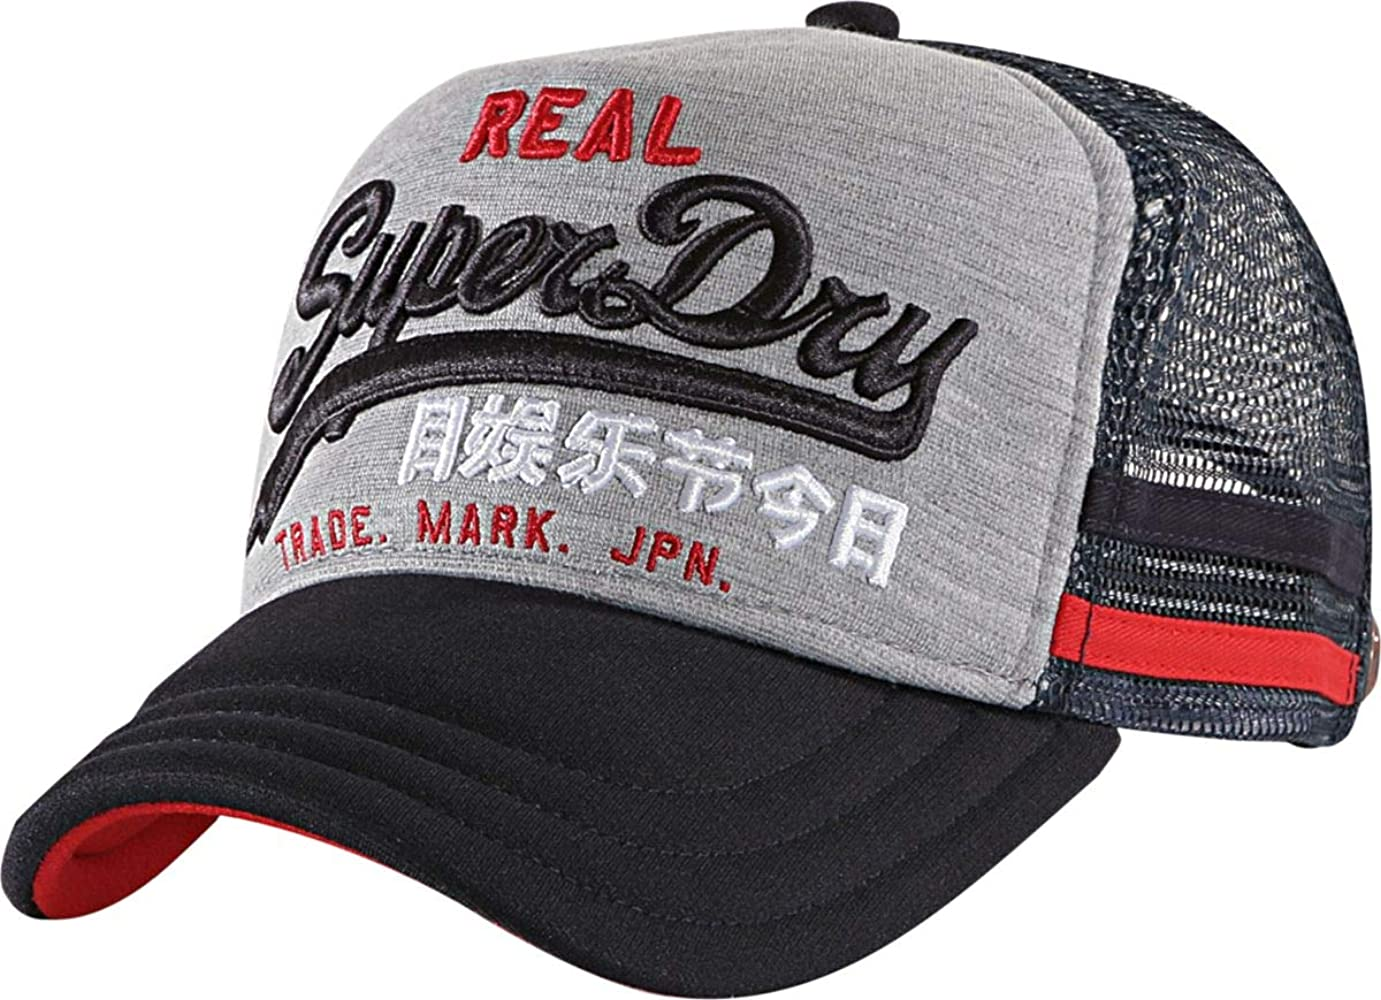 SUPERDRY Premium Good Cap: Amazon.es: Ropa y accesorios